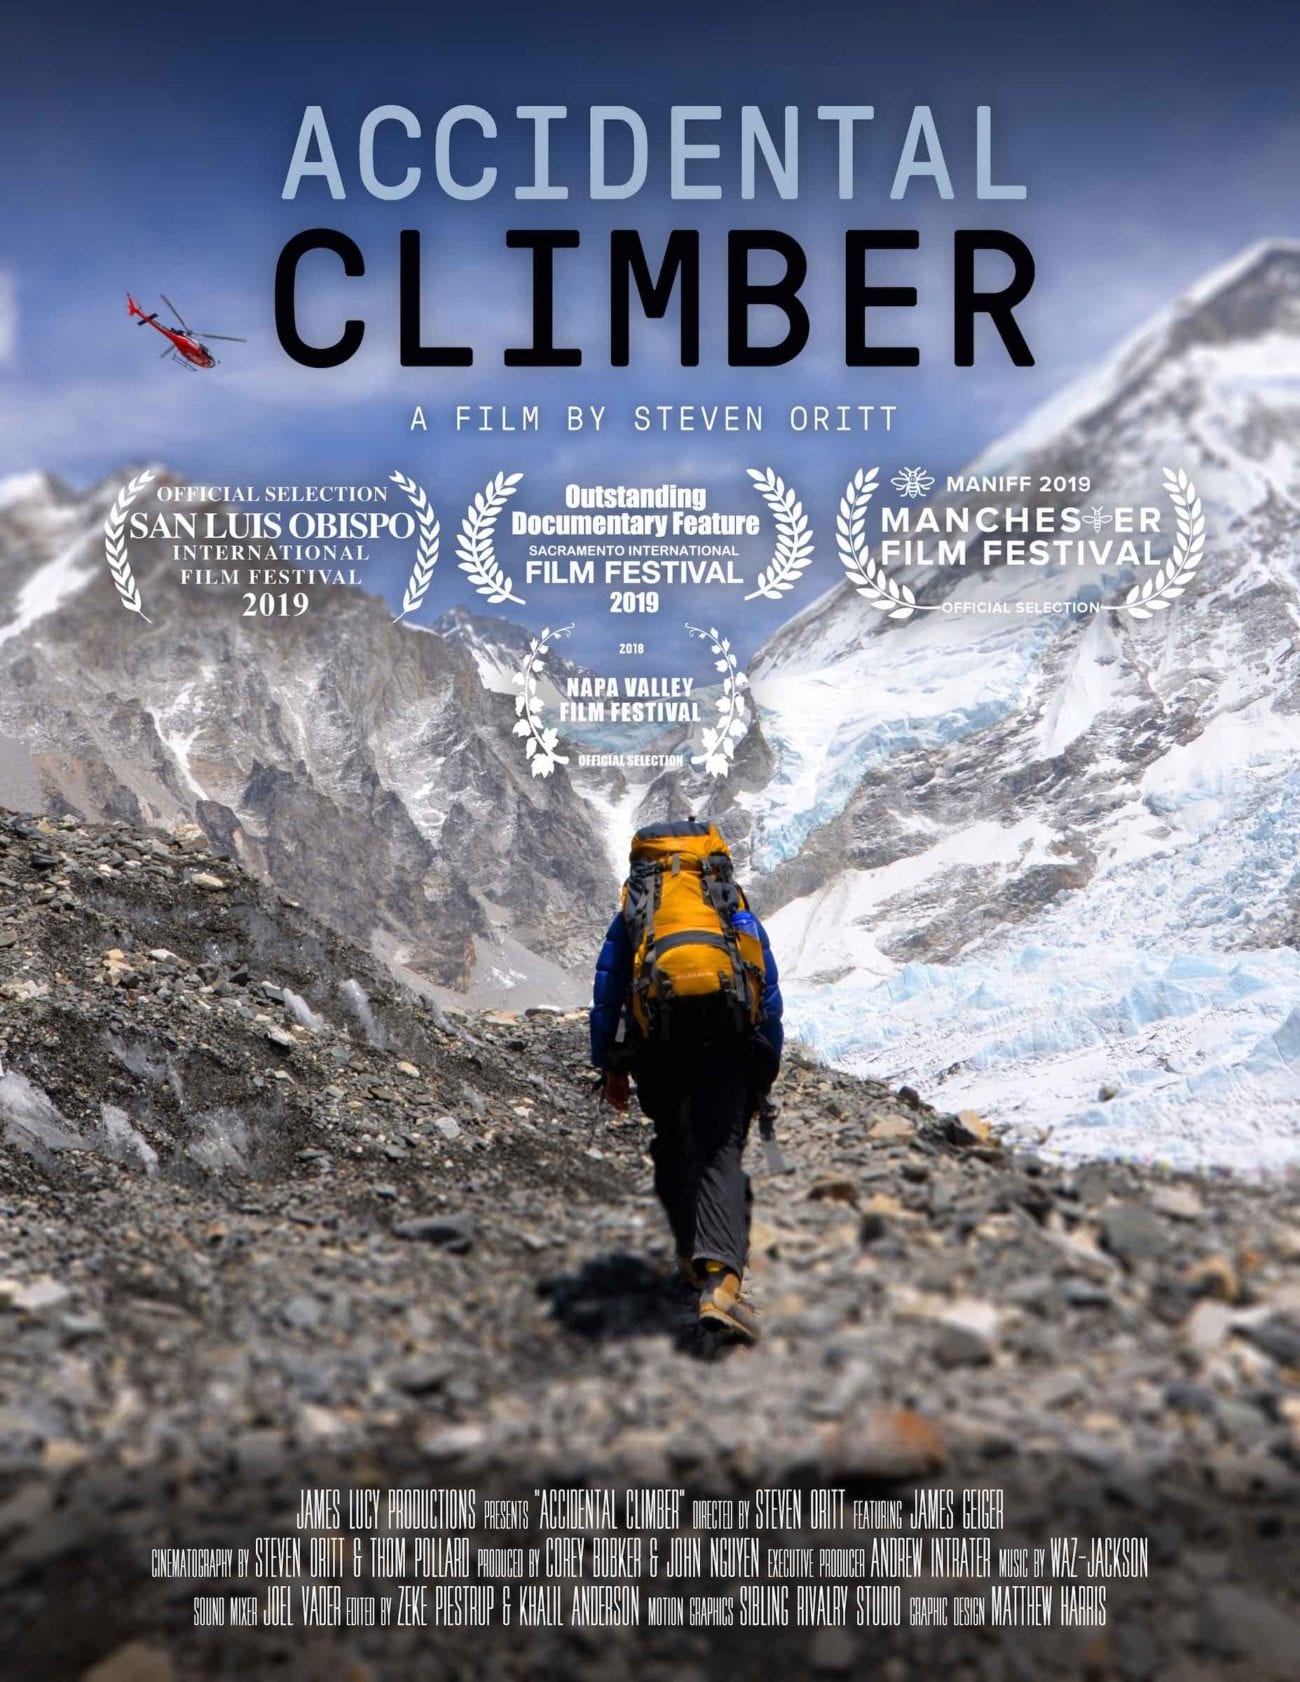 We highlight Steven Oritt's documentary 'Accidental Climber' in advance of its Australian premiere at the Melbourne Documentary Film Festival.